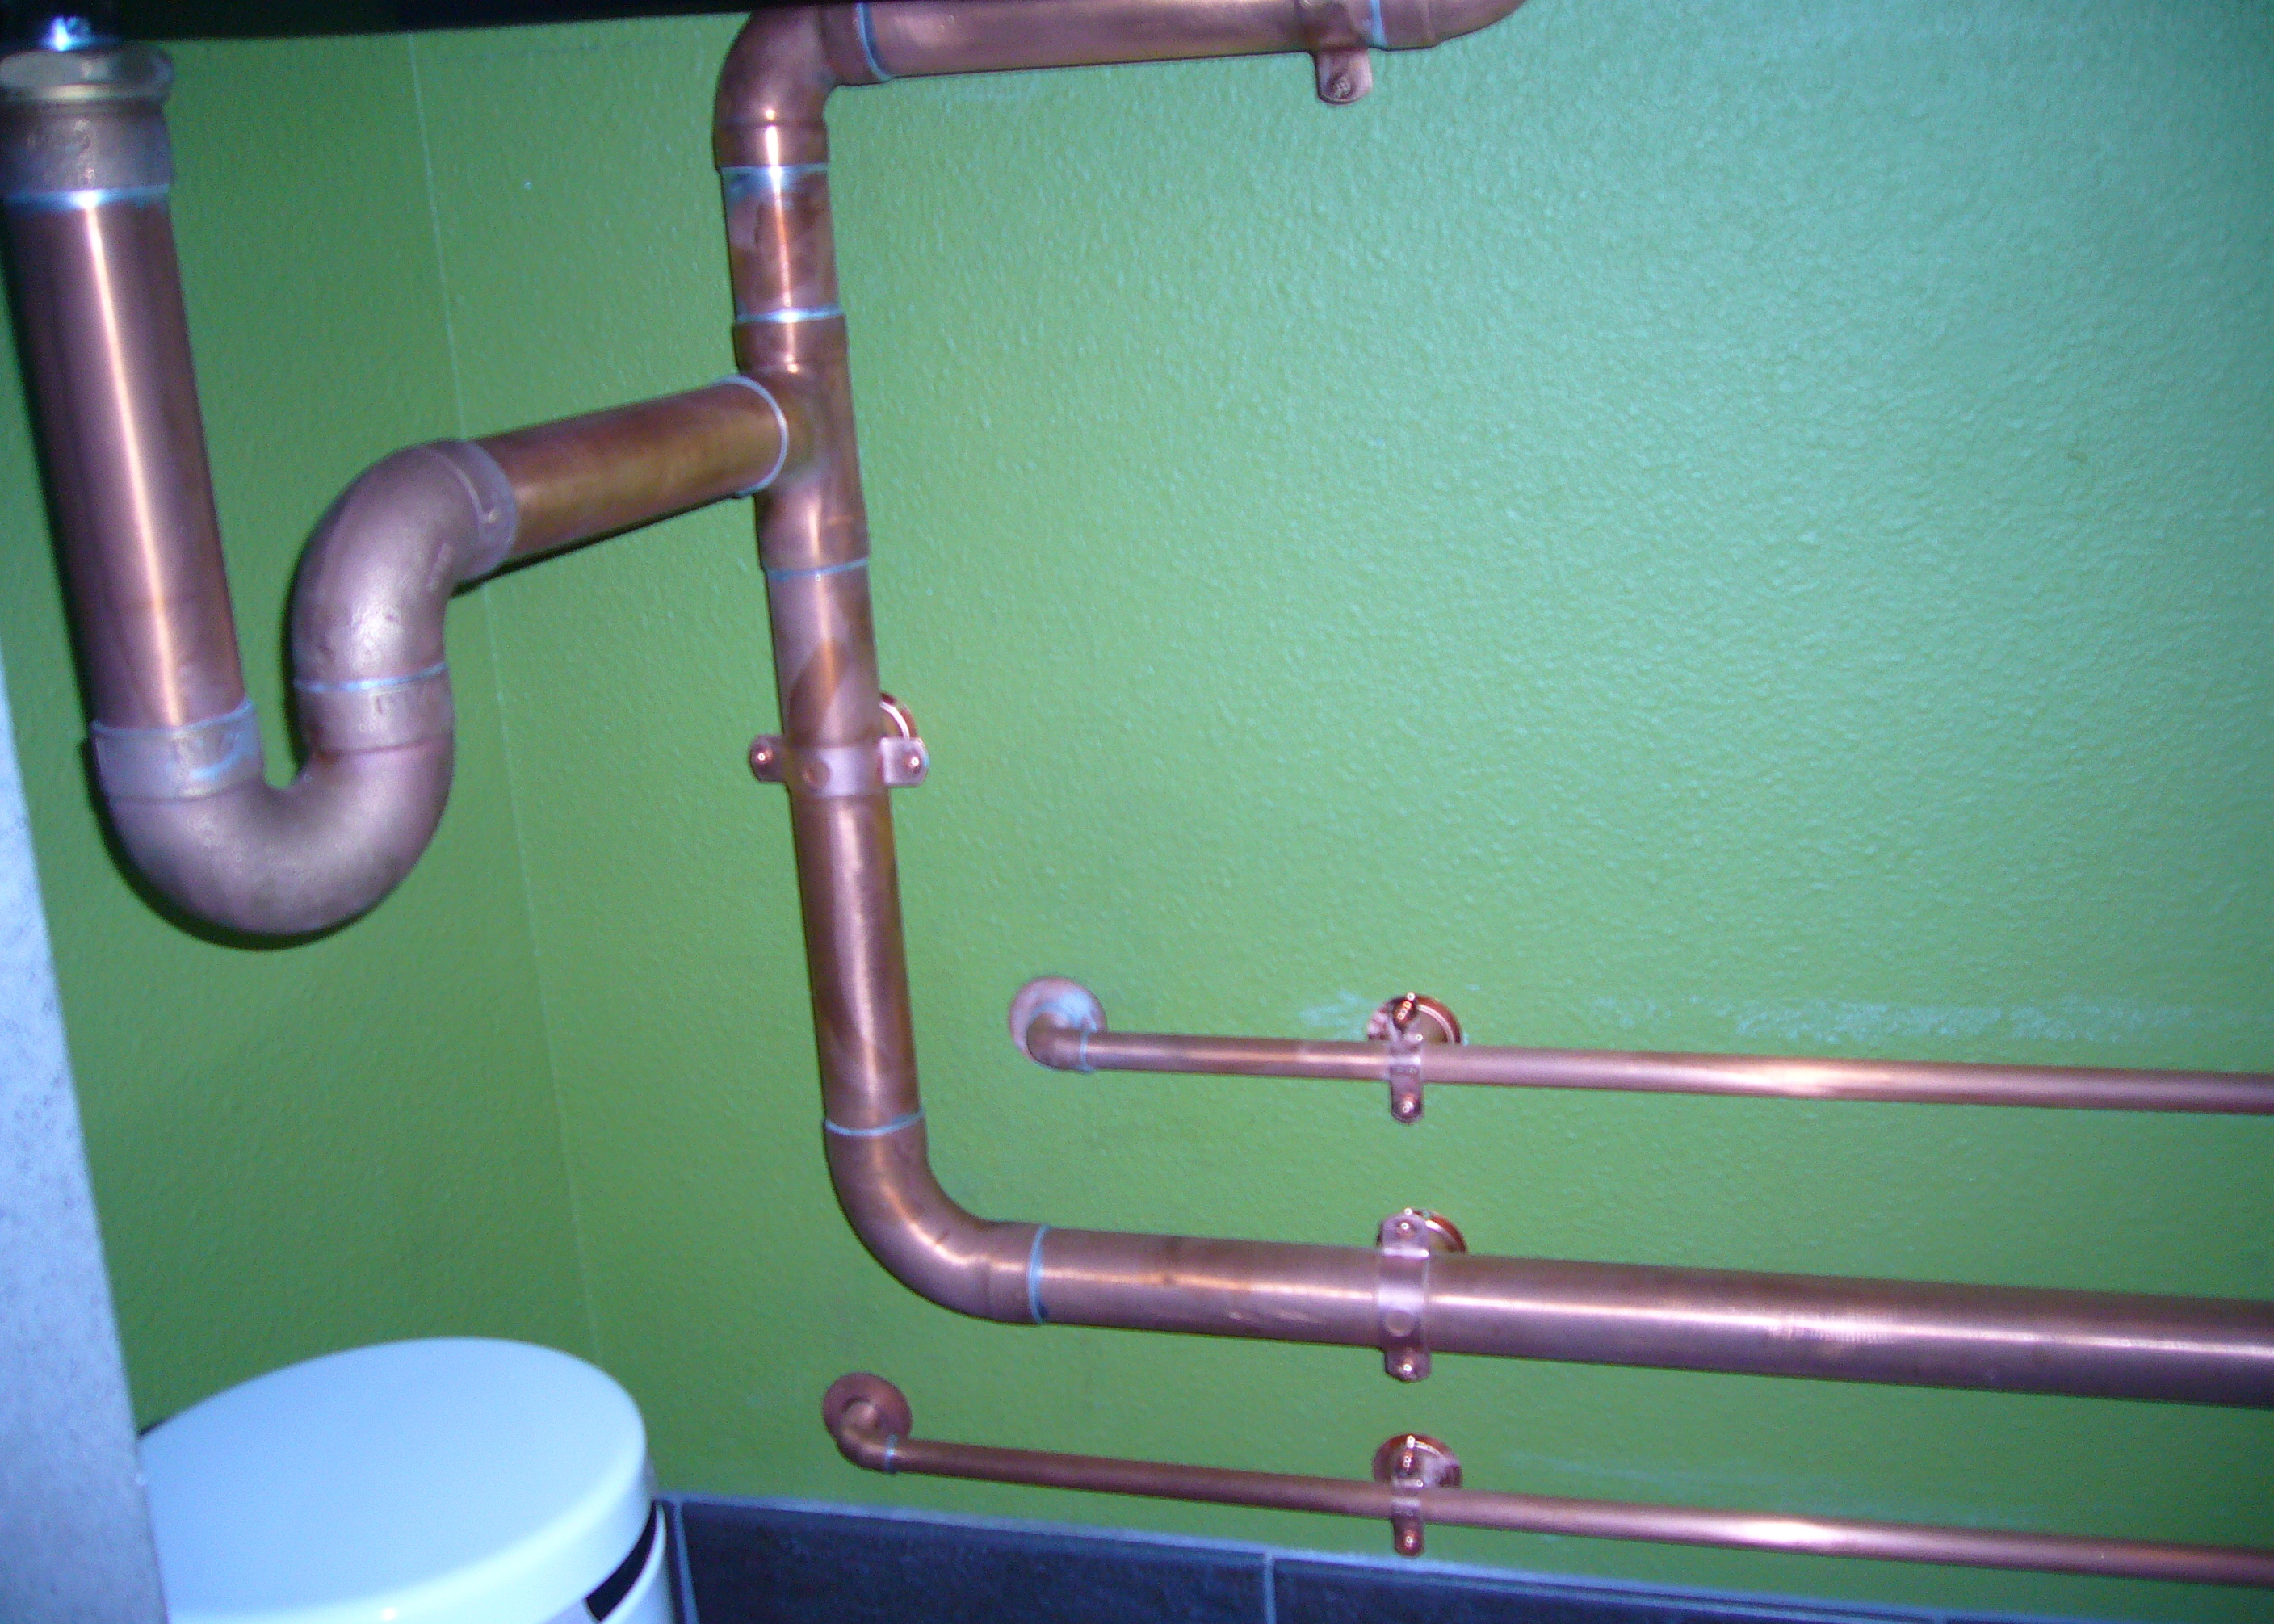 How To Attach Sink To Wall : under sink copper p trap drain lines and water lines attached to wall ...